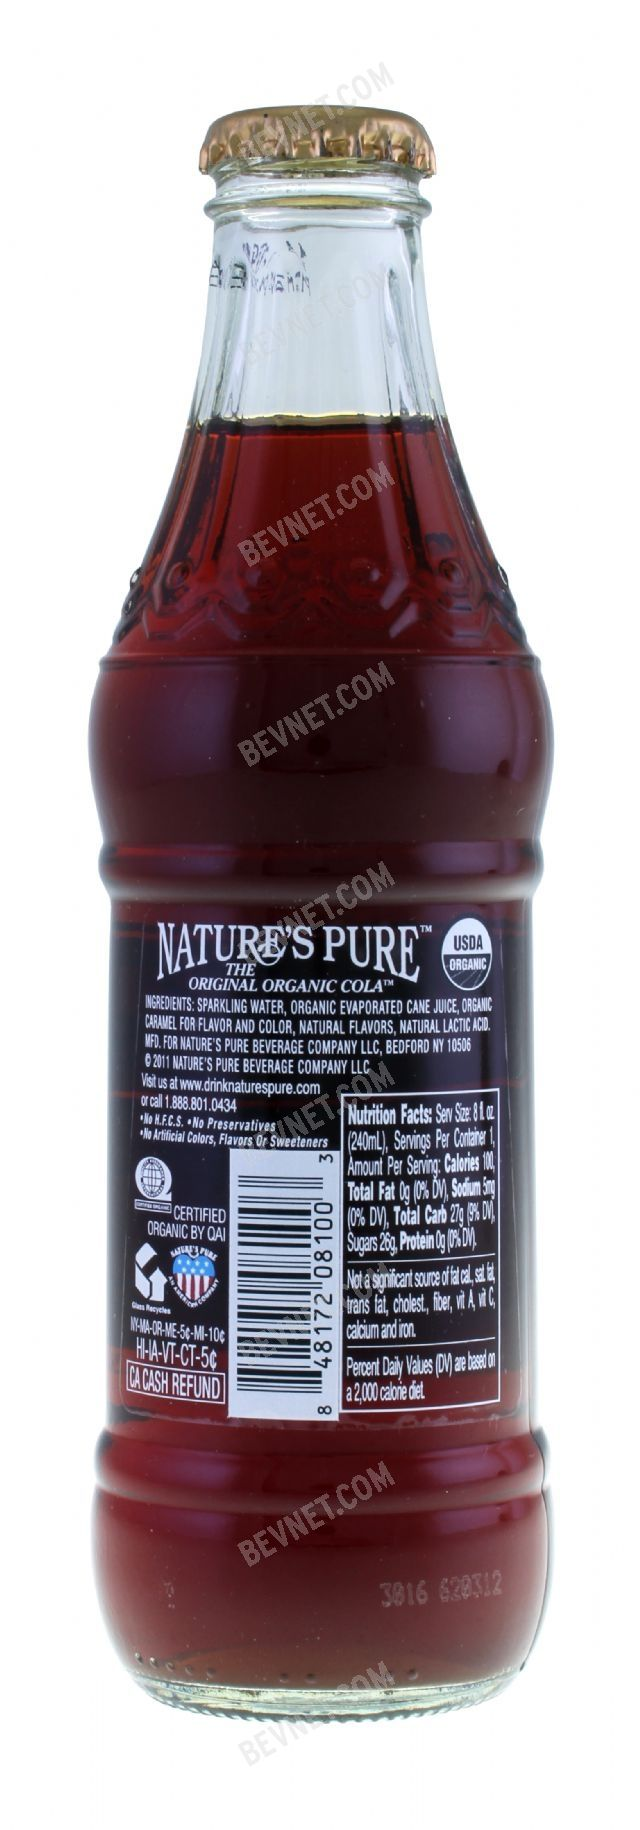 Nature's Pure: